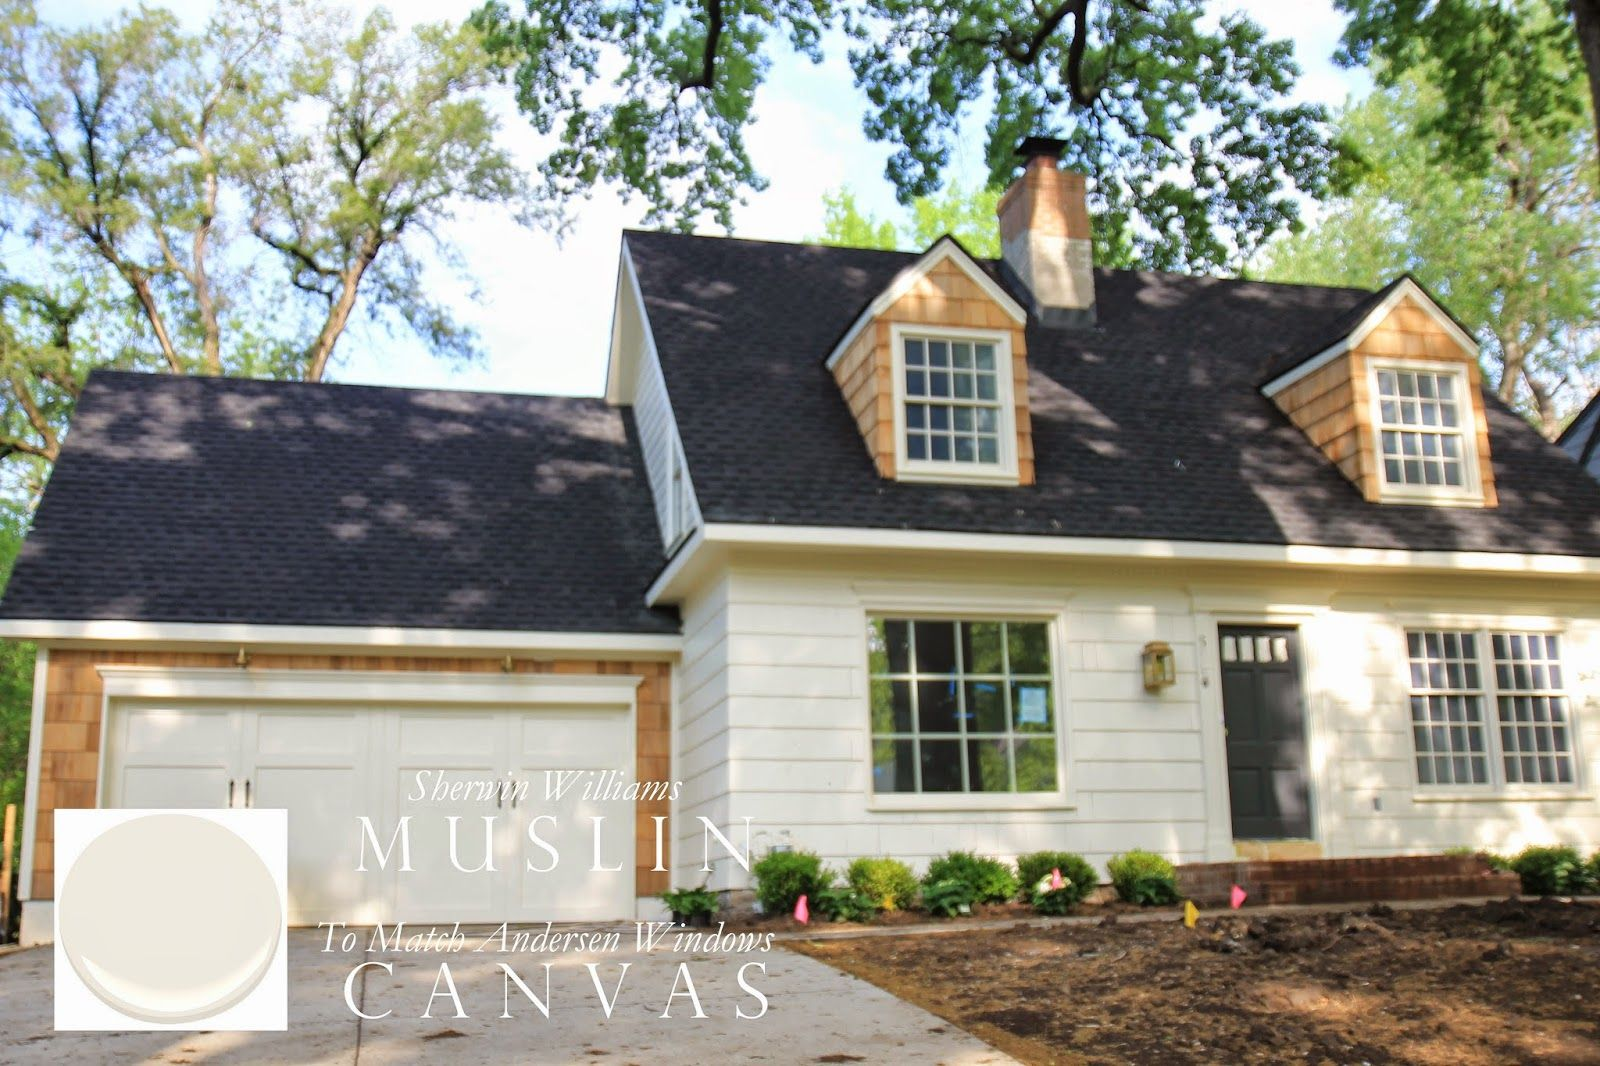 Sherwin Williams Muslin Matches Anderson 400 Windows In Canvas Everyday Occasions Blog